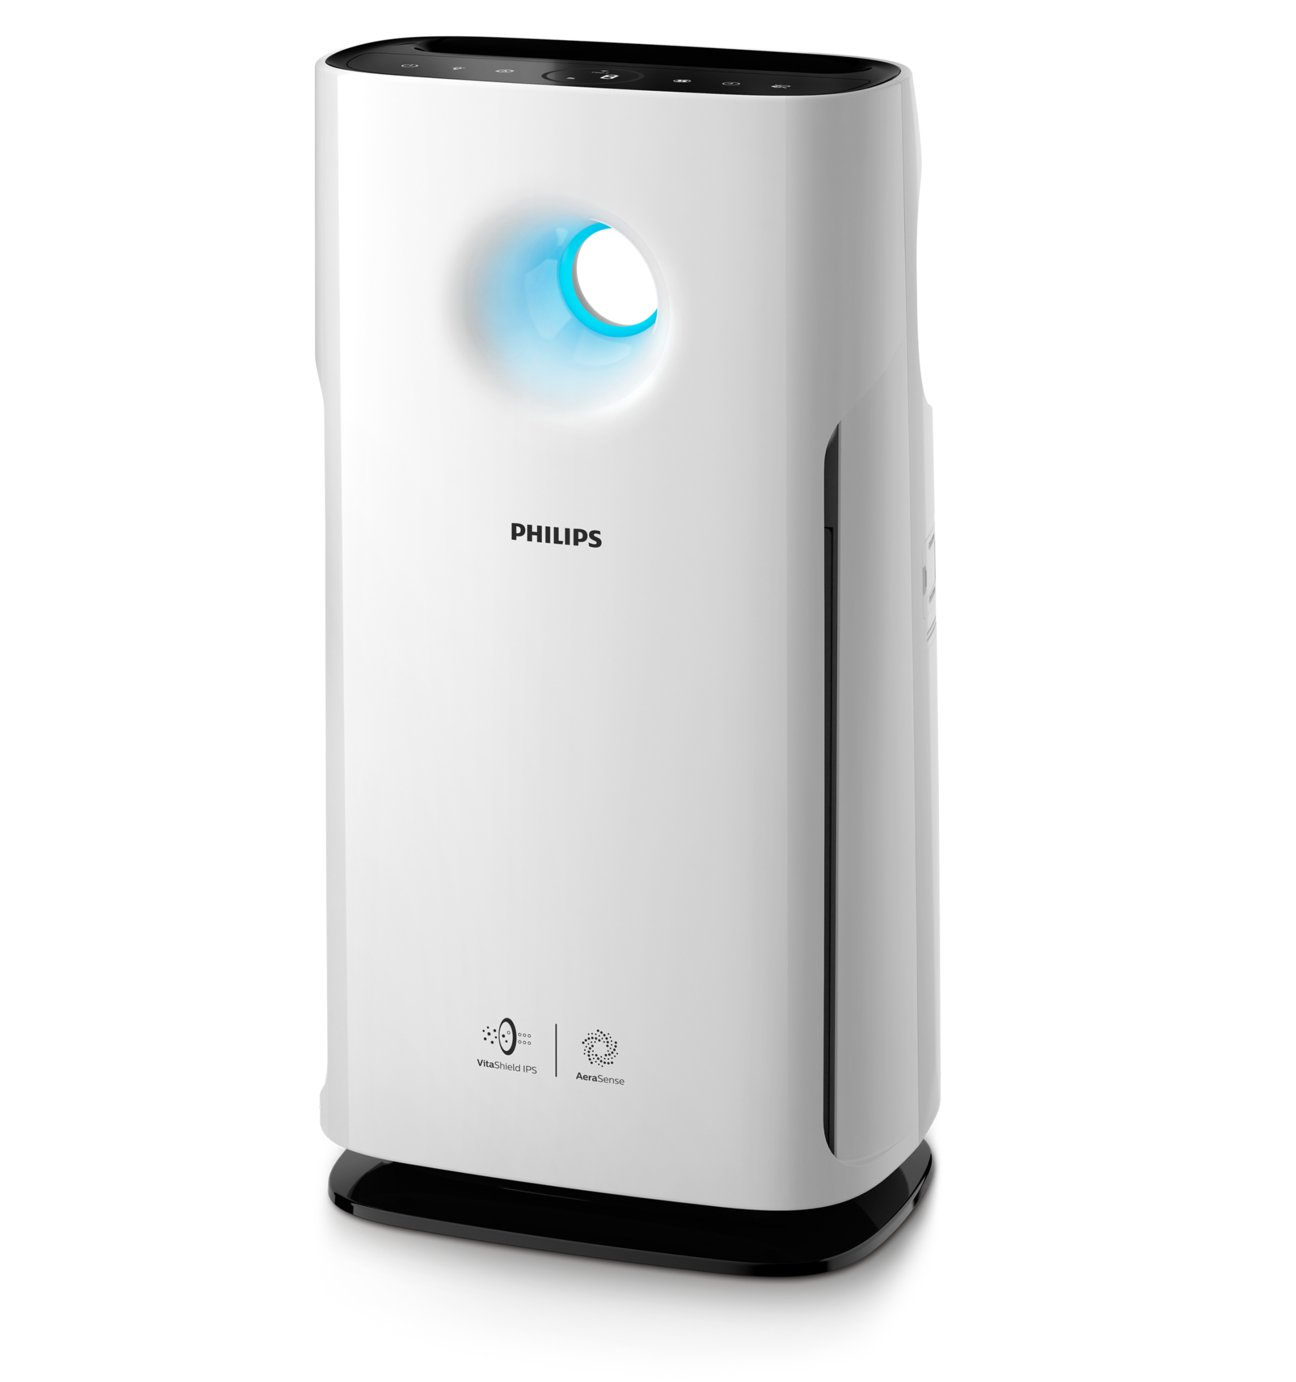 Philips 3000I AC3259 Air Purifier